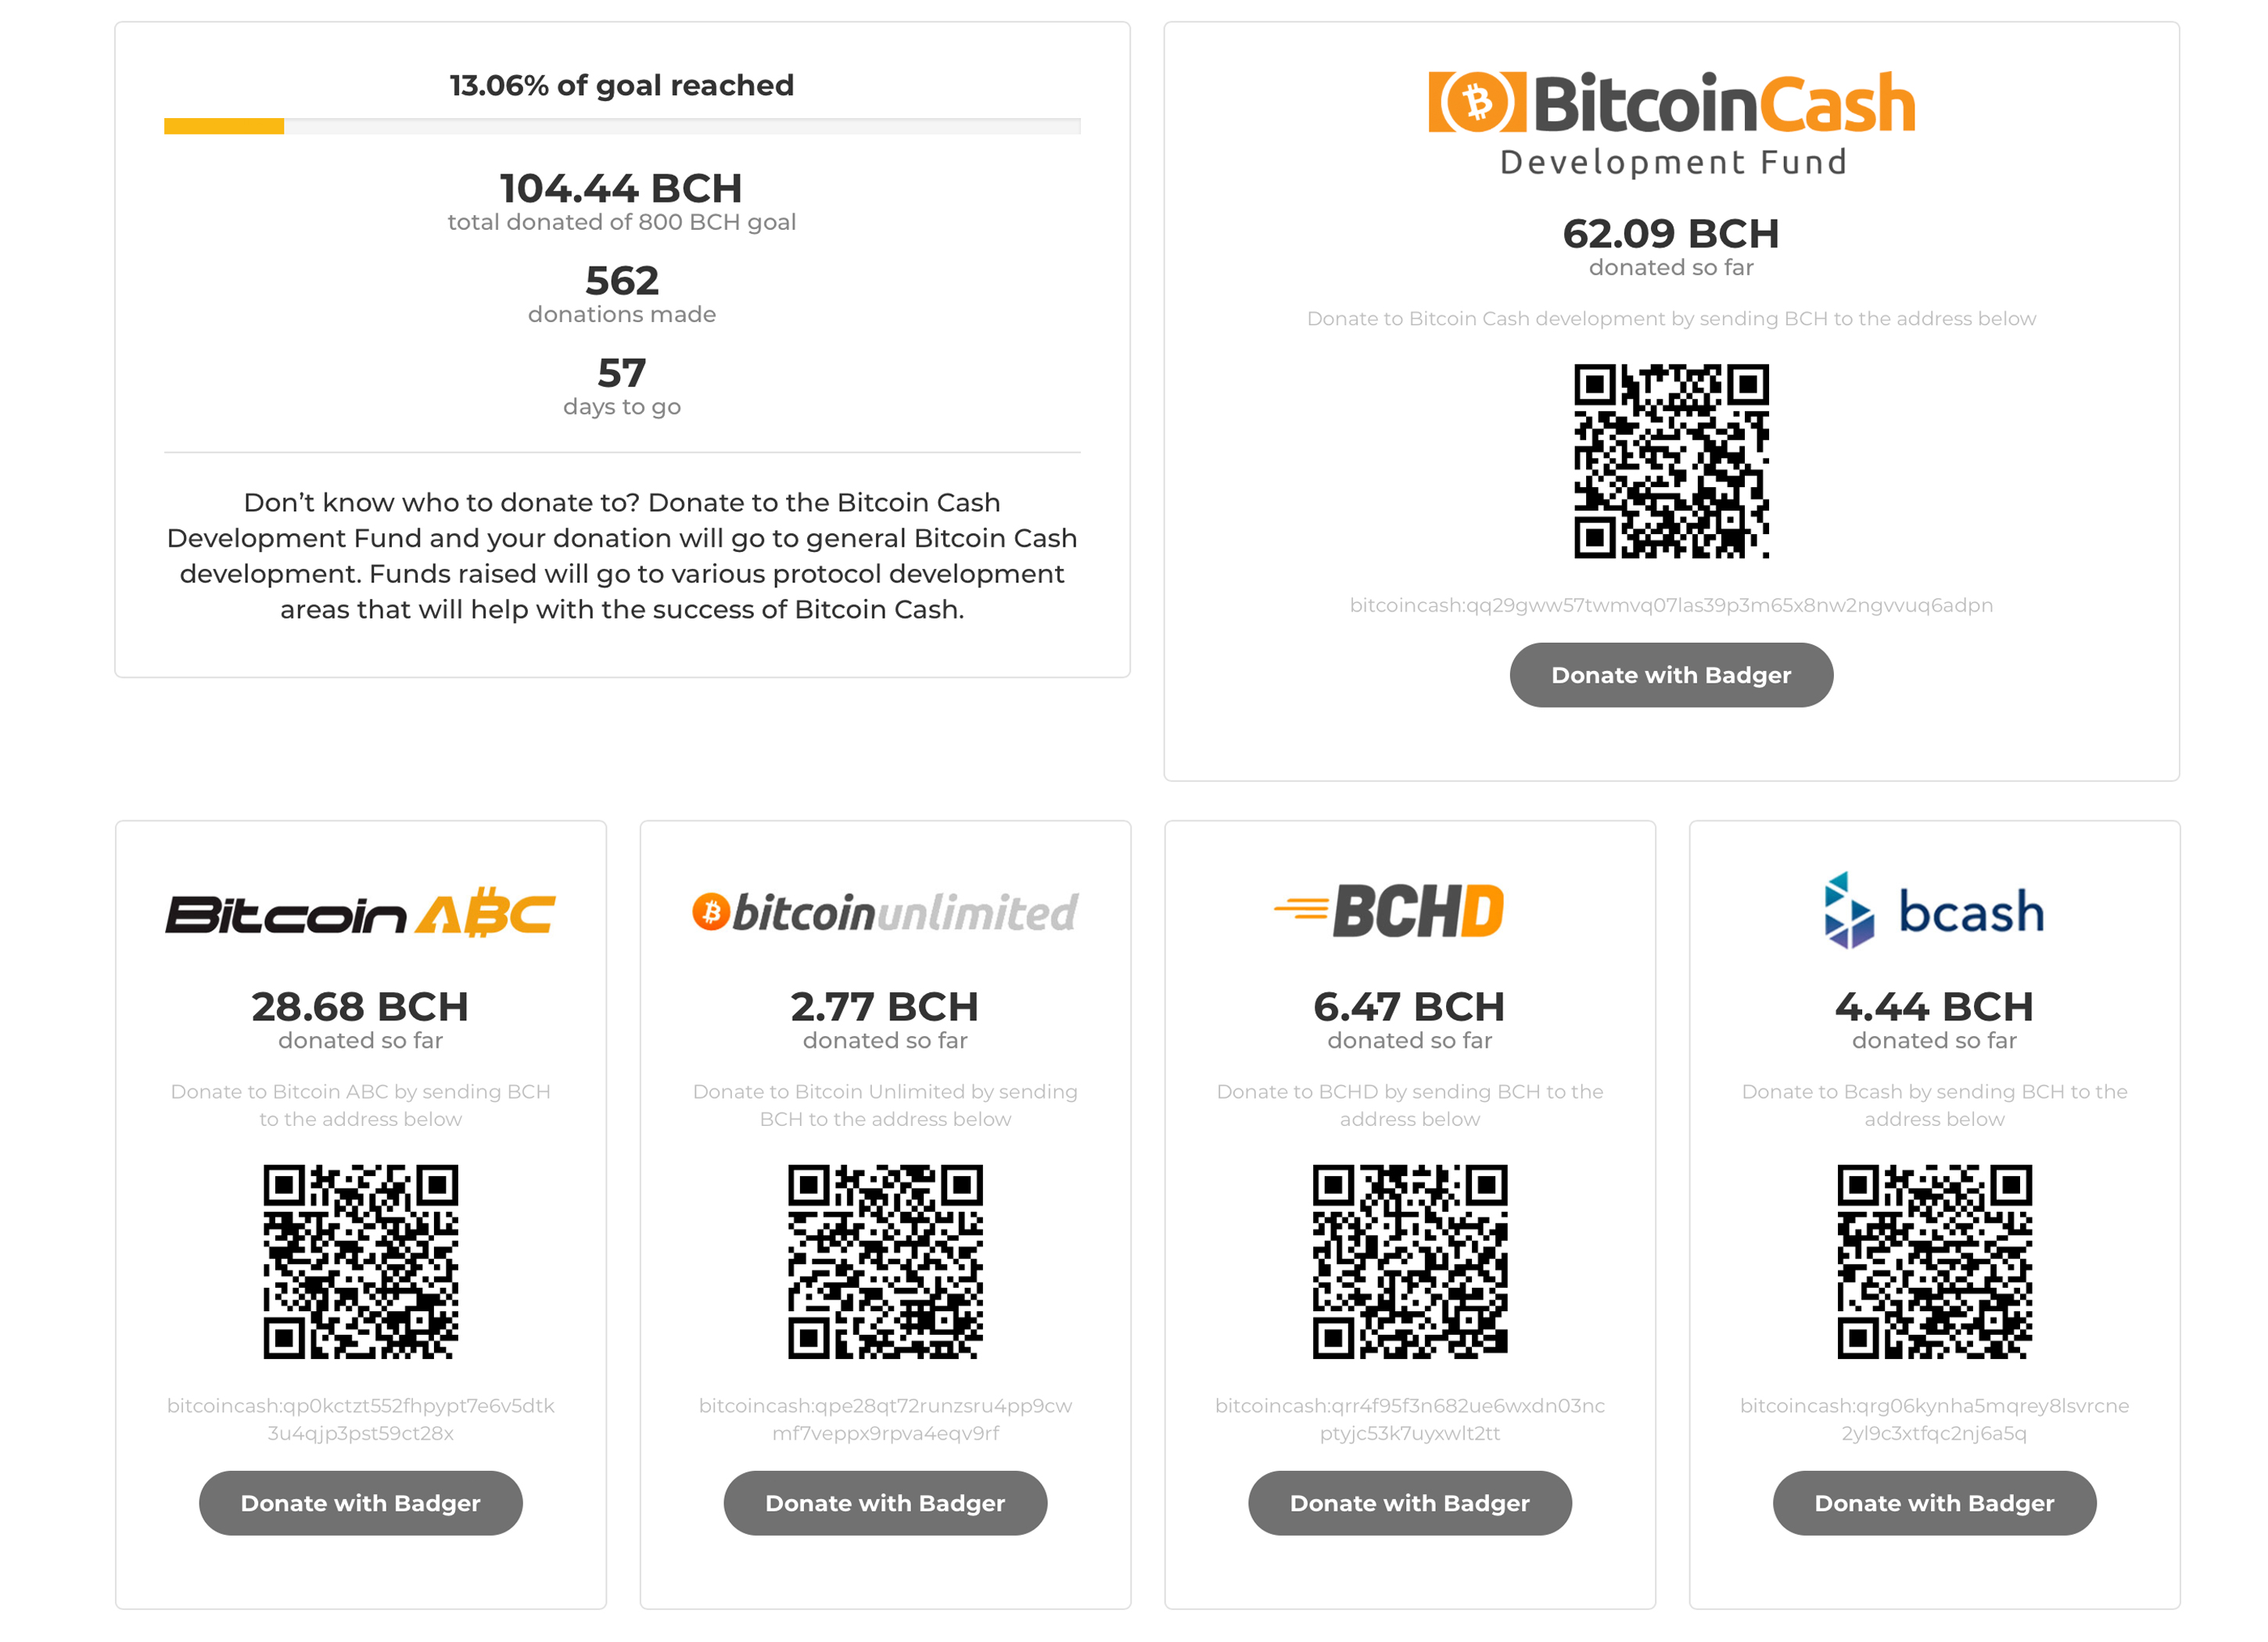 BCH Businesses Launch Development Fund for Bitcoin Cash